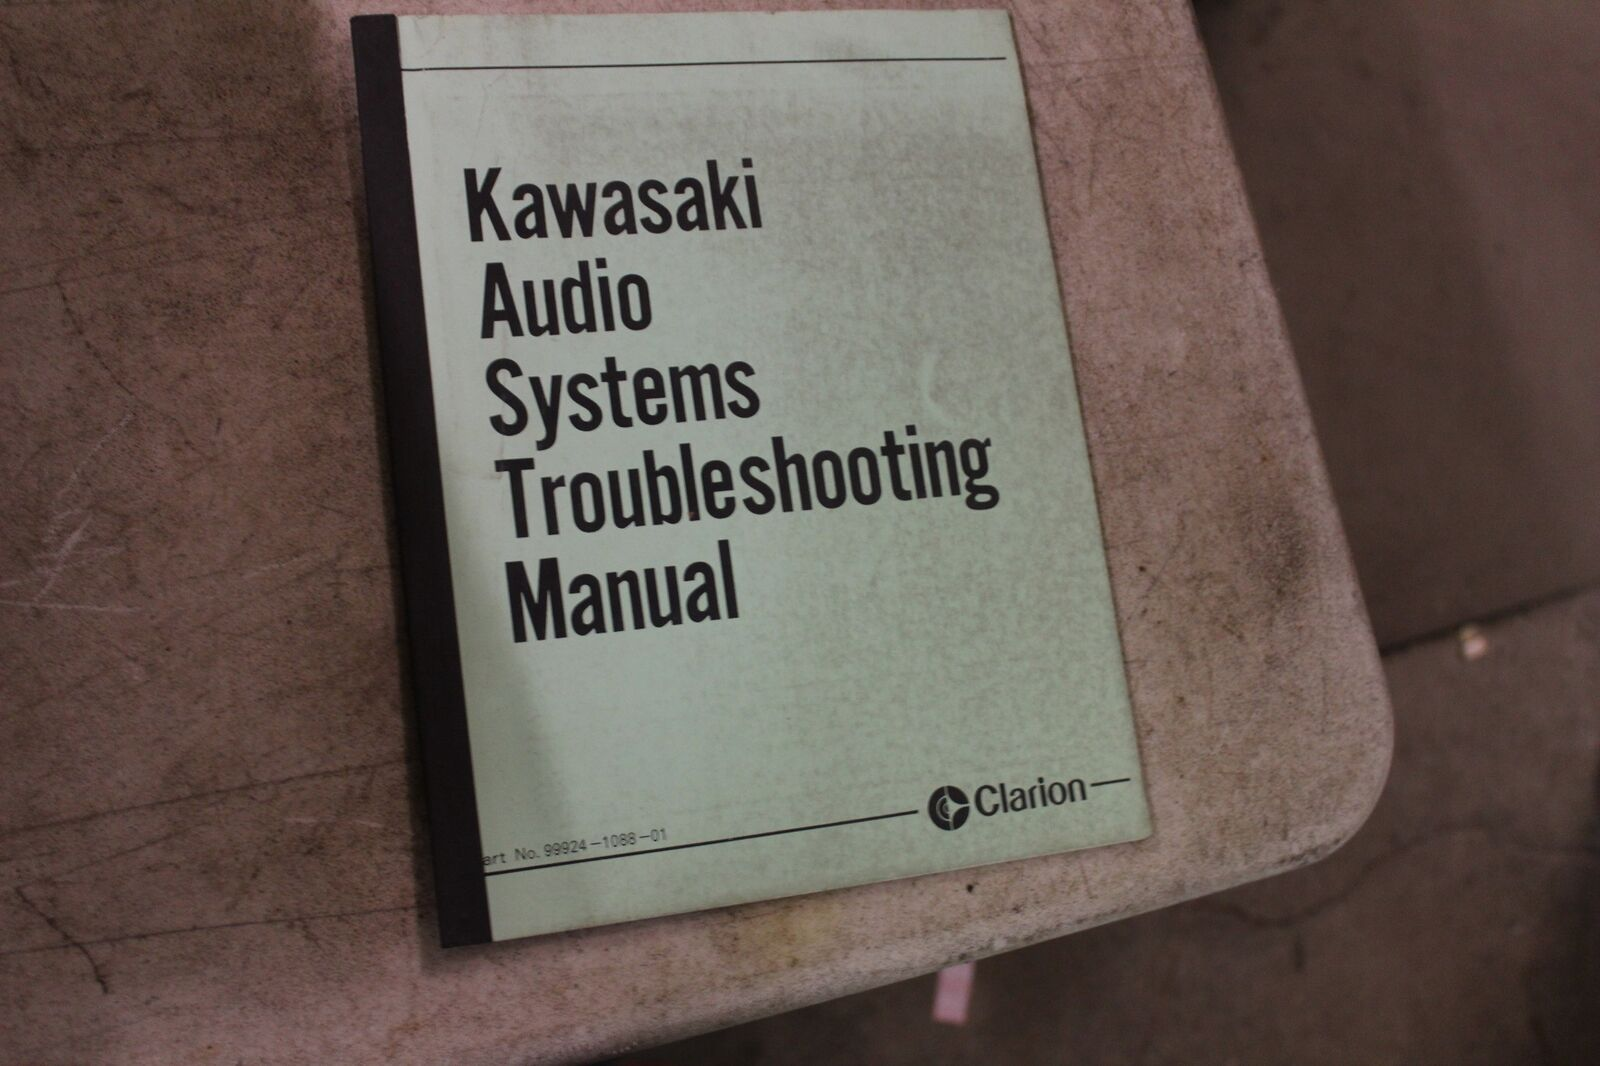 Clarion Kawasaki Voyager Audio Trouble Shooting Manual 99924 1088 01 Zn1300 Wiring Harness 1 Of 1only Available